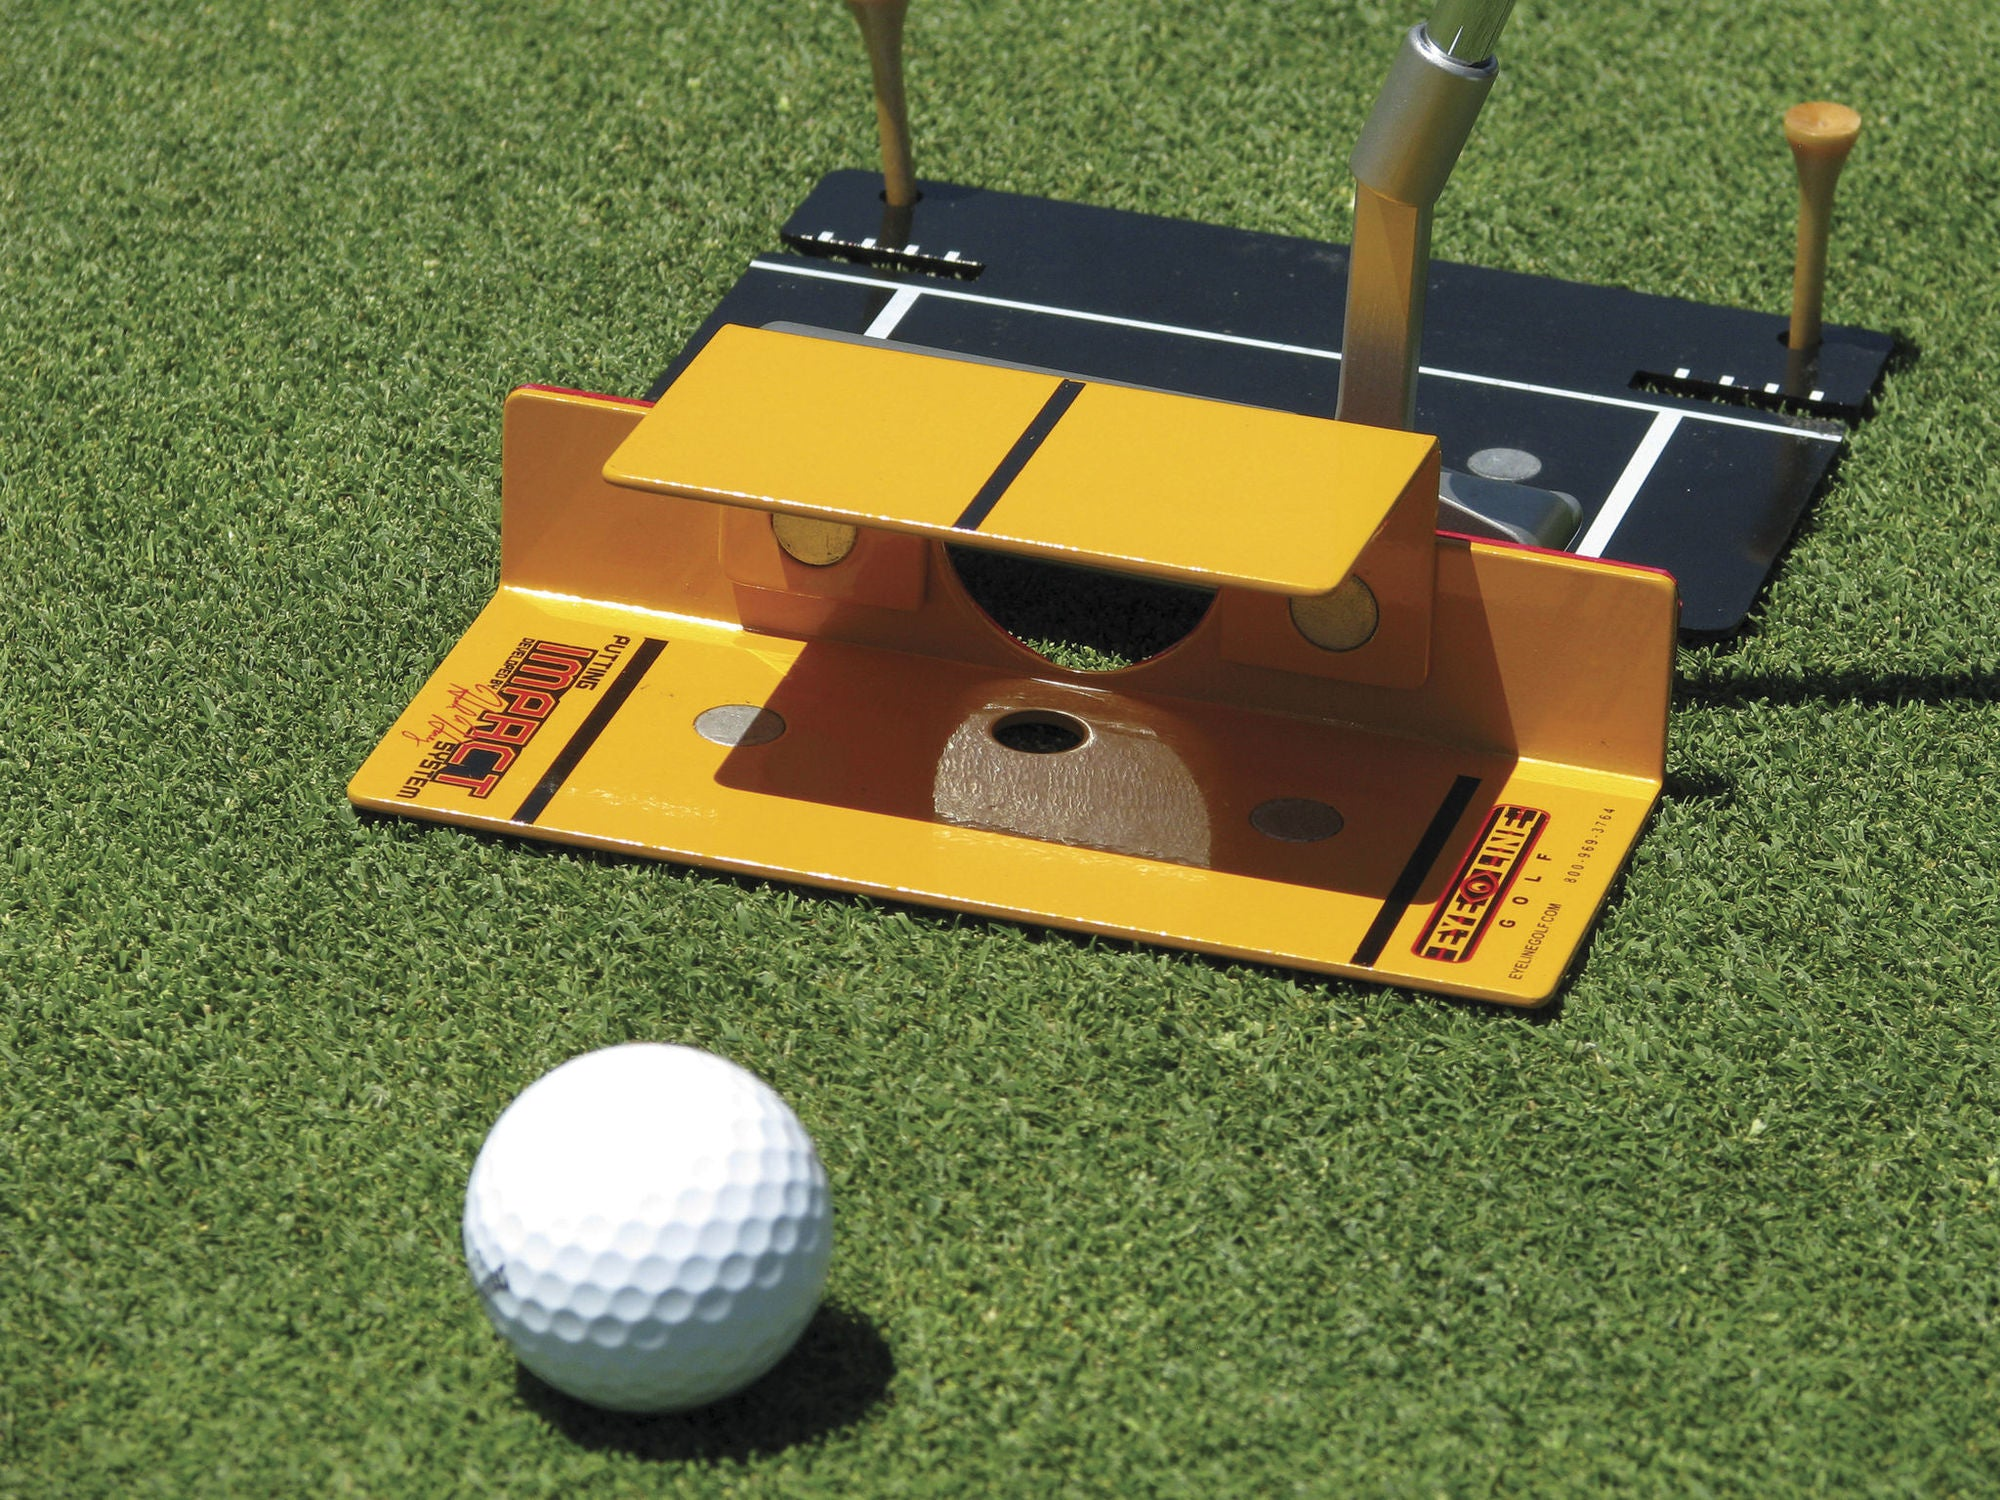 Eyeline Golf - Putting Impact System - Putterfingers.com